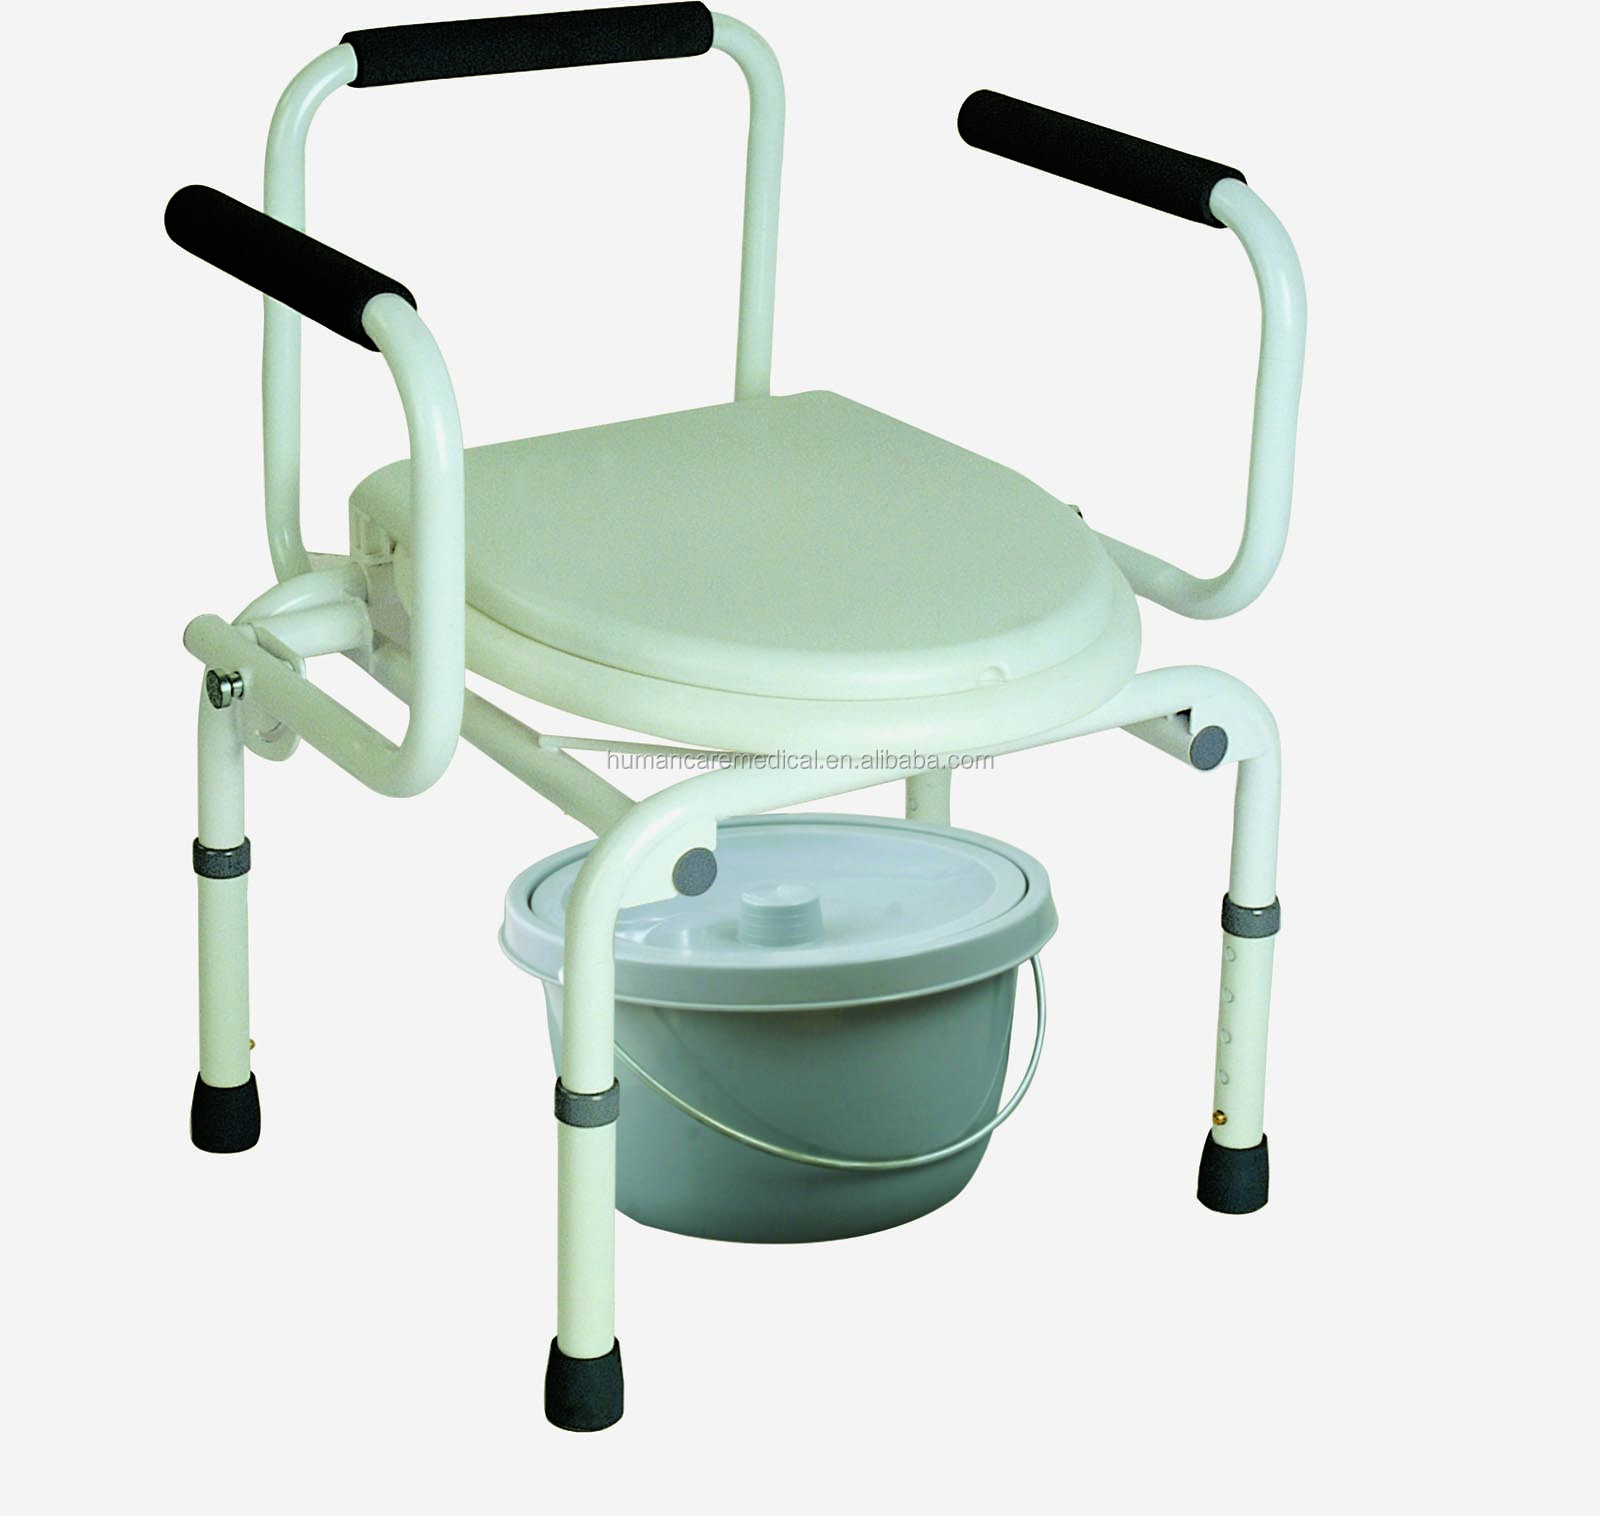 New Commode Chair - rtty1.com | rtty1.com